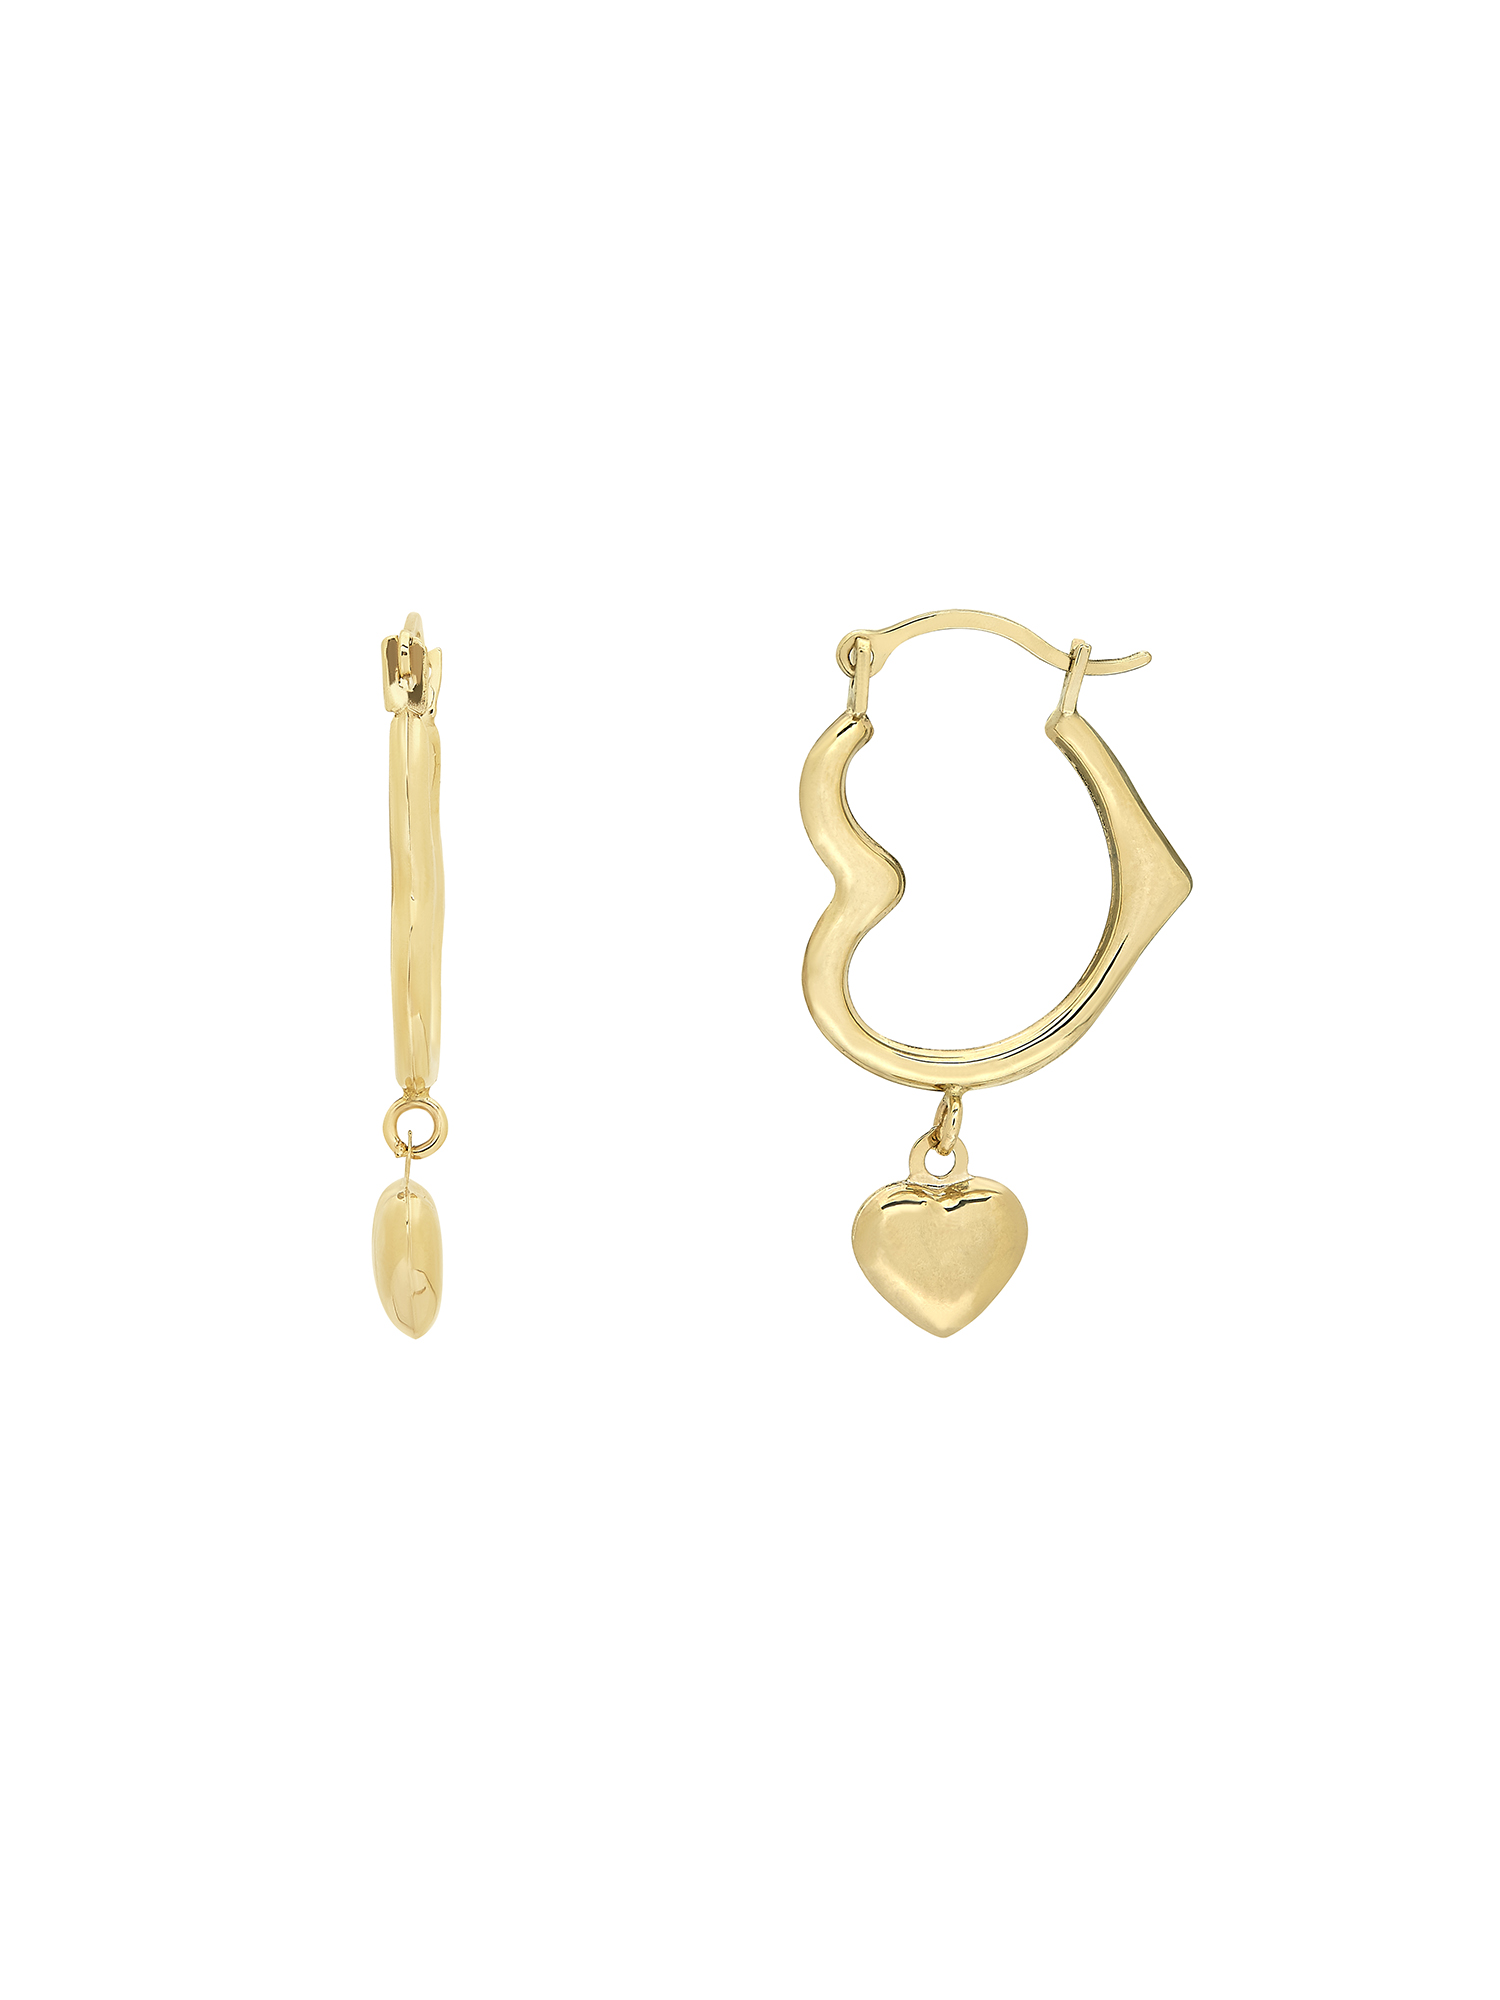 Simply Gold™ 10KY Polished Heart Hoop Earring w/Heart Dangle